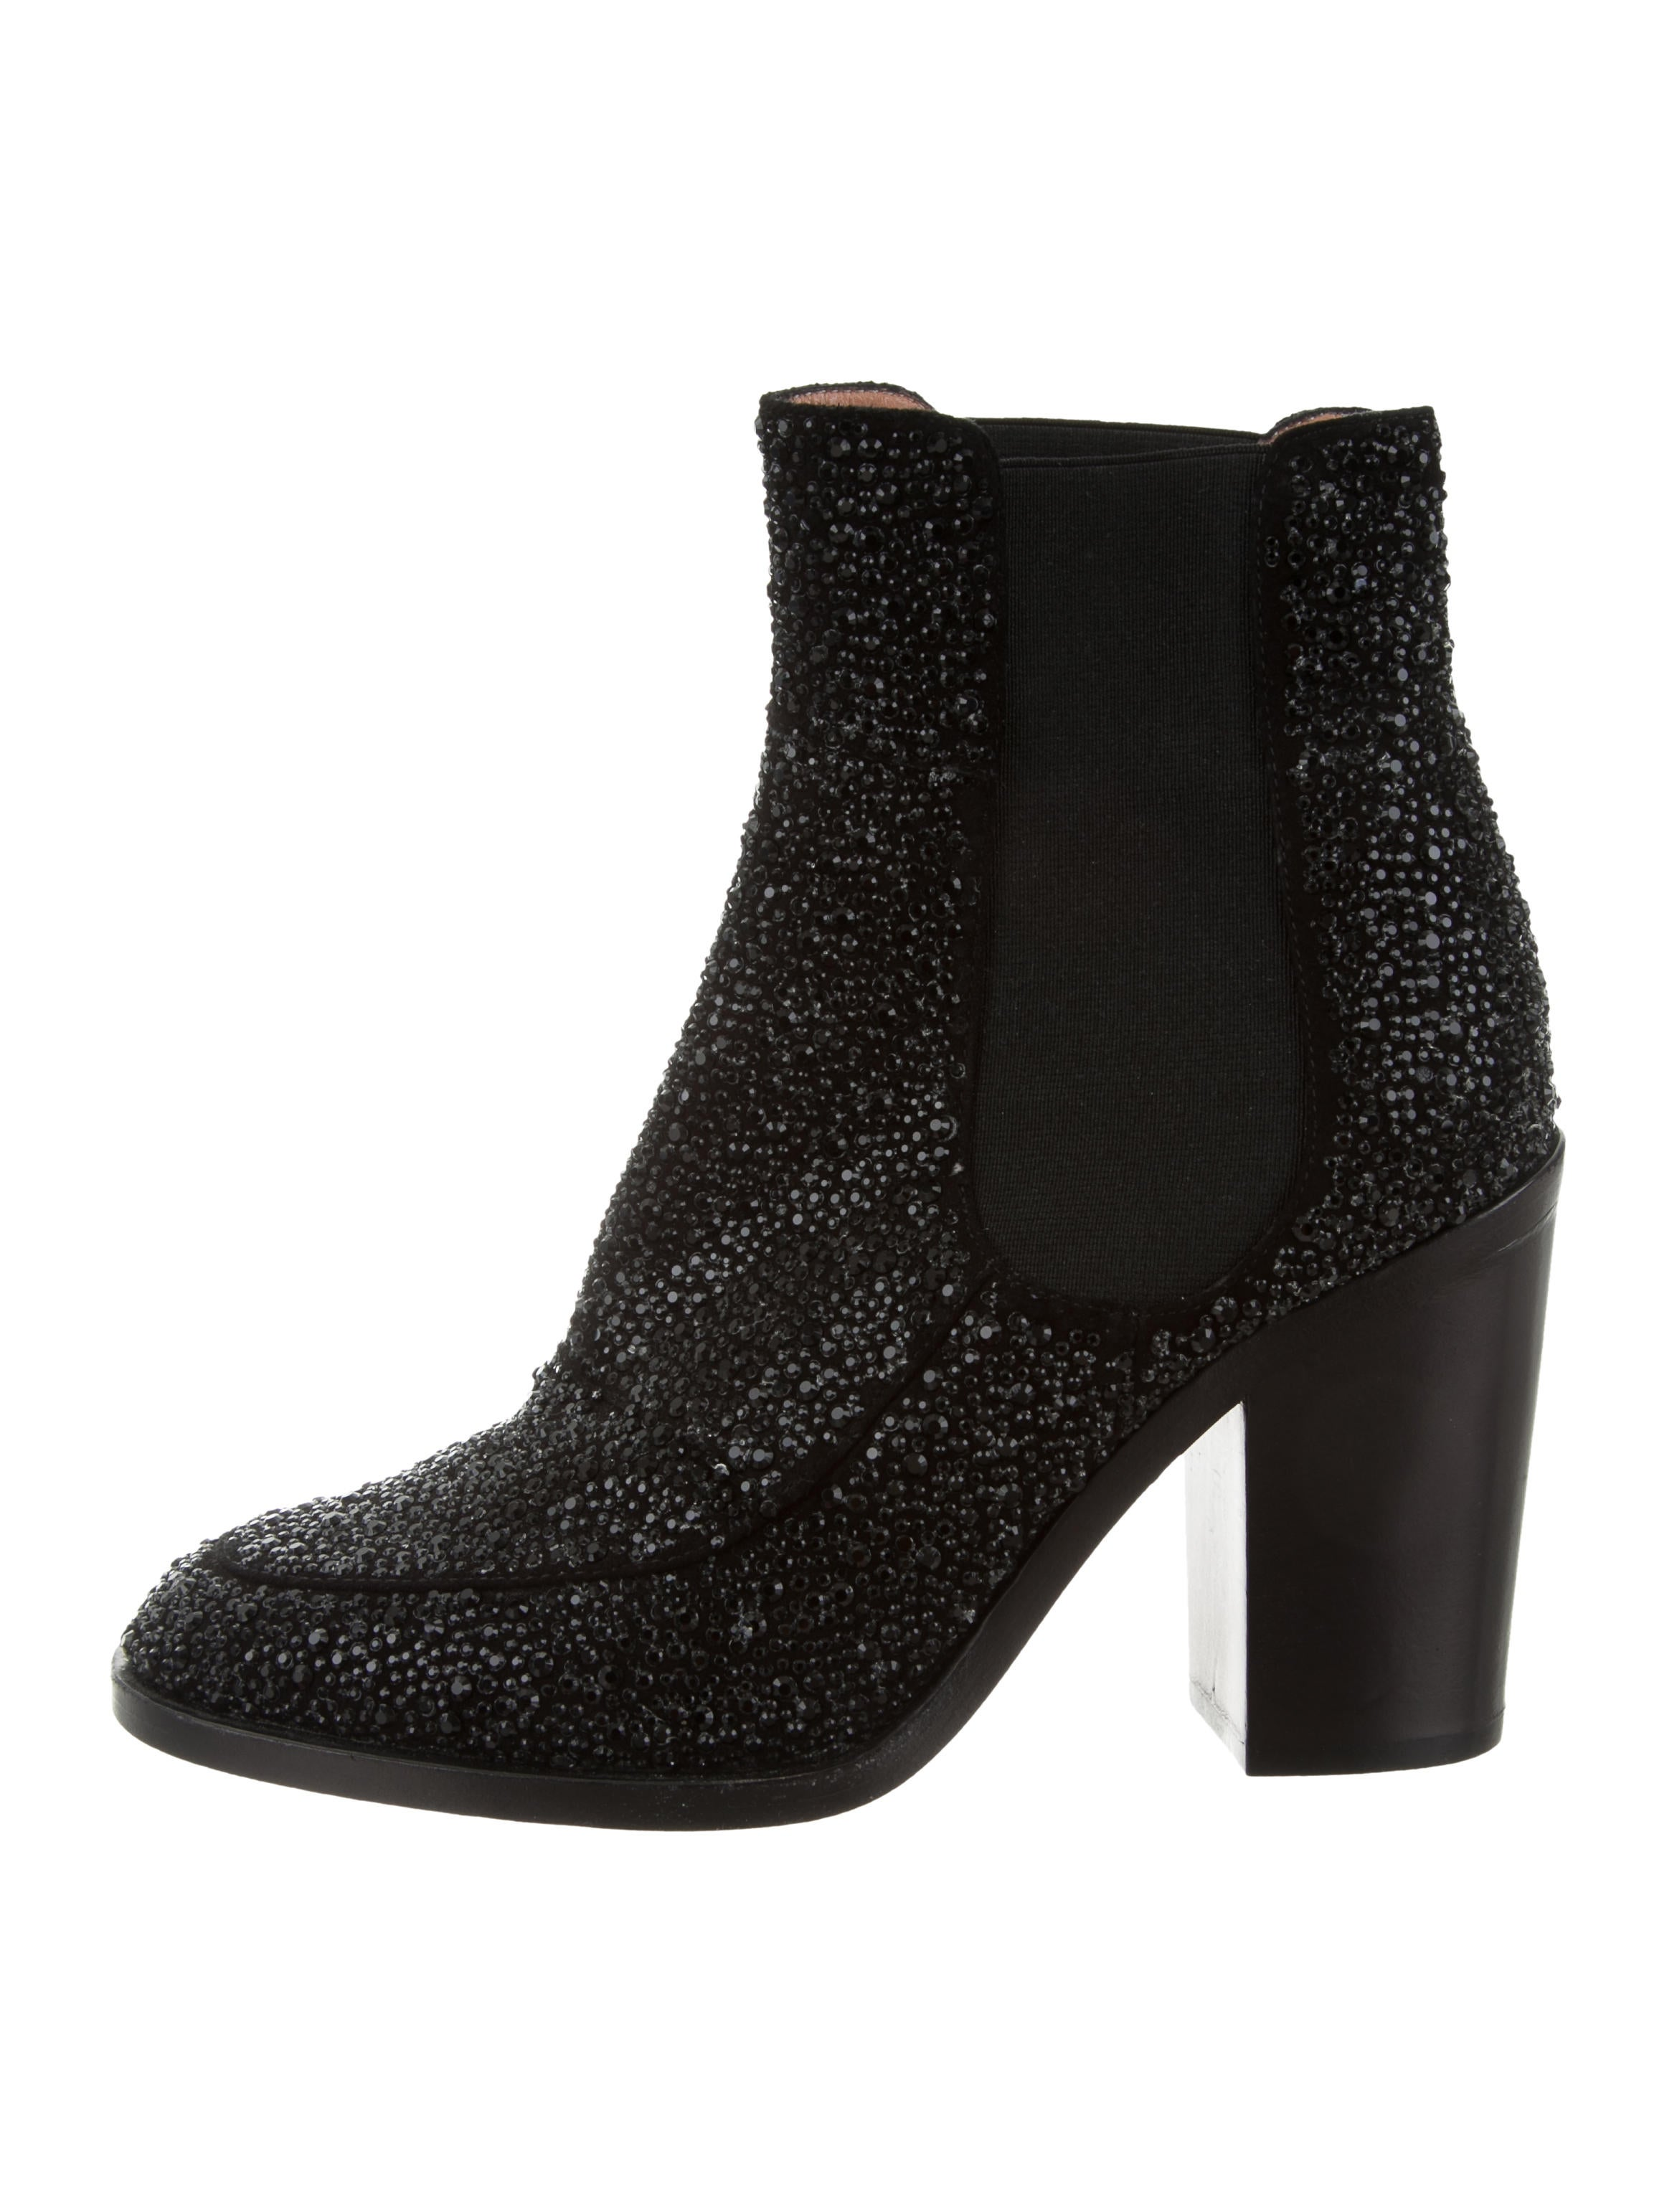 cheap sale footlocker Laurence Dacade Embellished Ankle Boots discount best best sale online best buy cheap factory outlet n3eMO